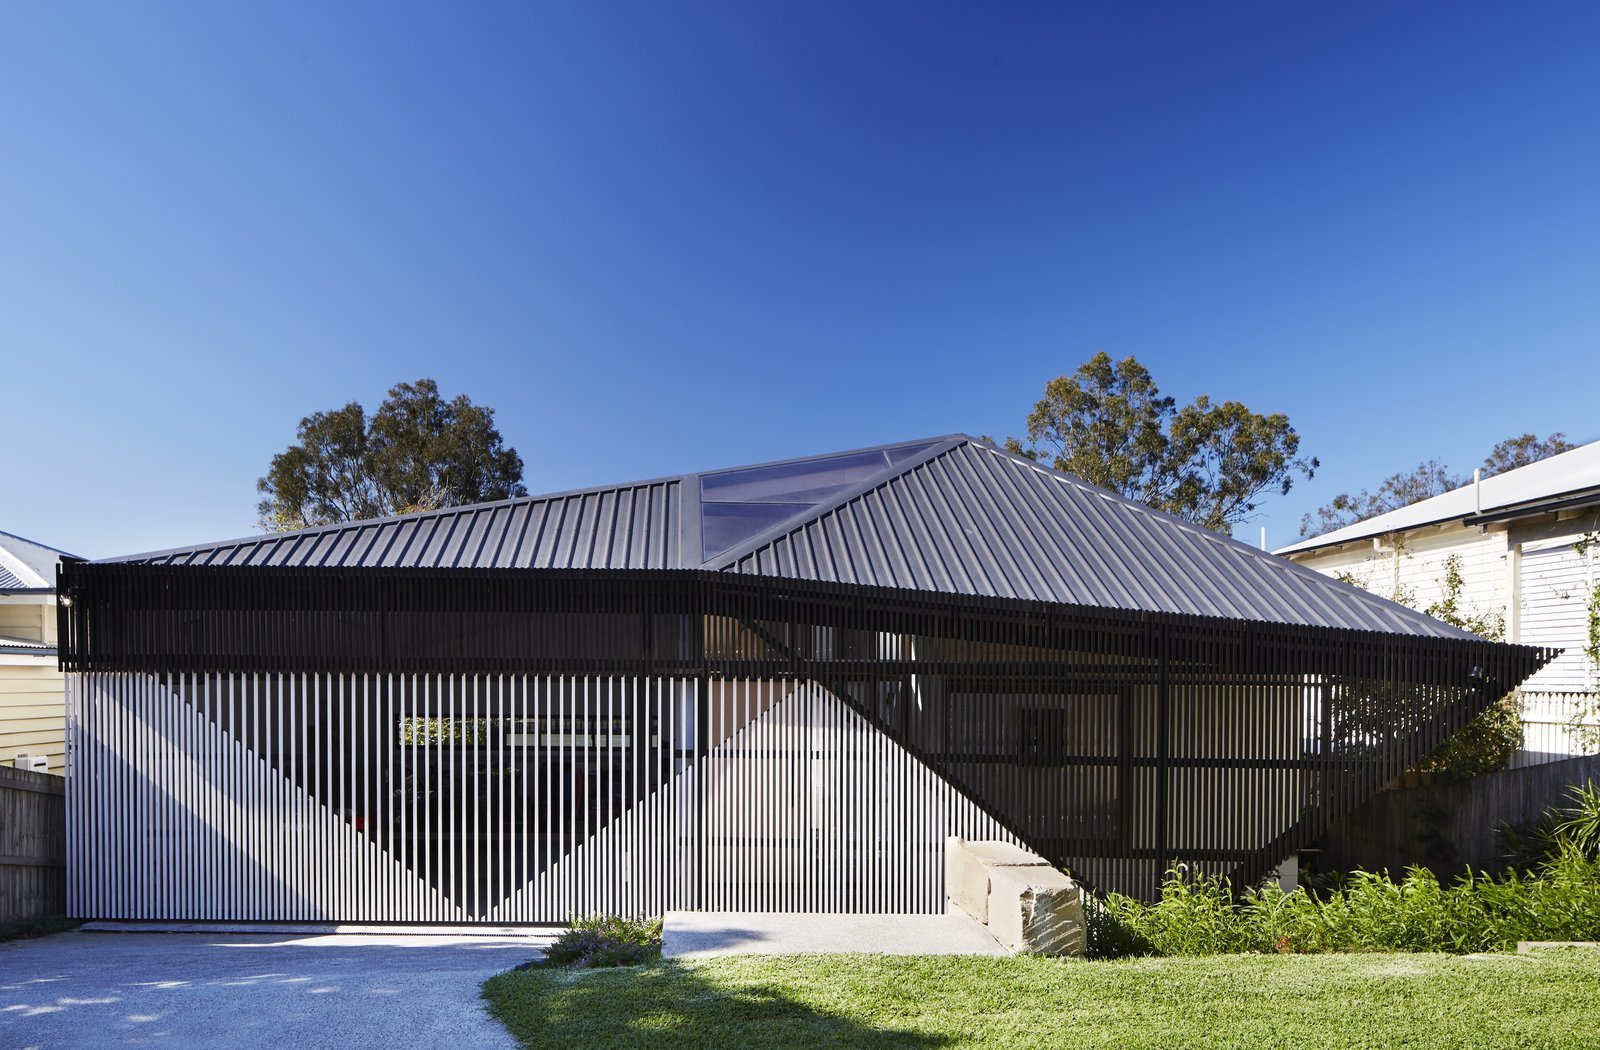 Exterior, House Building Type, Metal Roof Material, and Metal Siding Material  Photo 2 of 12 in An Edgy Slatted Facade Conceals a Striking Indoor/Outdoor Home in Brisbane